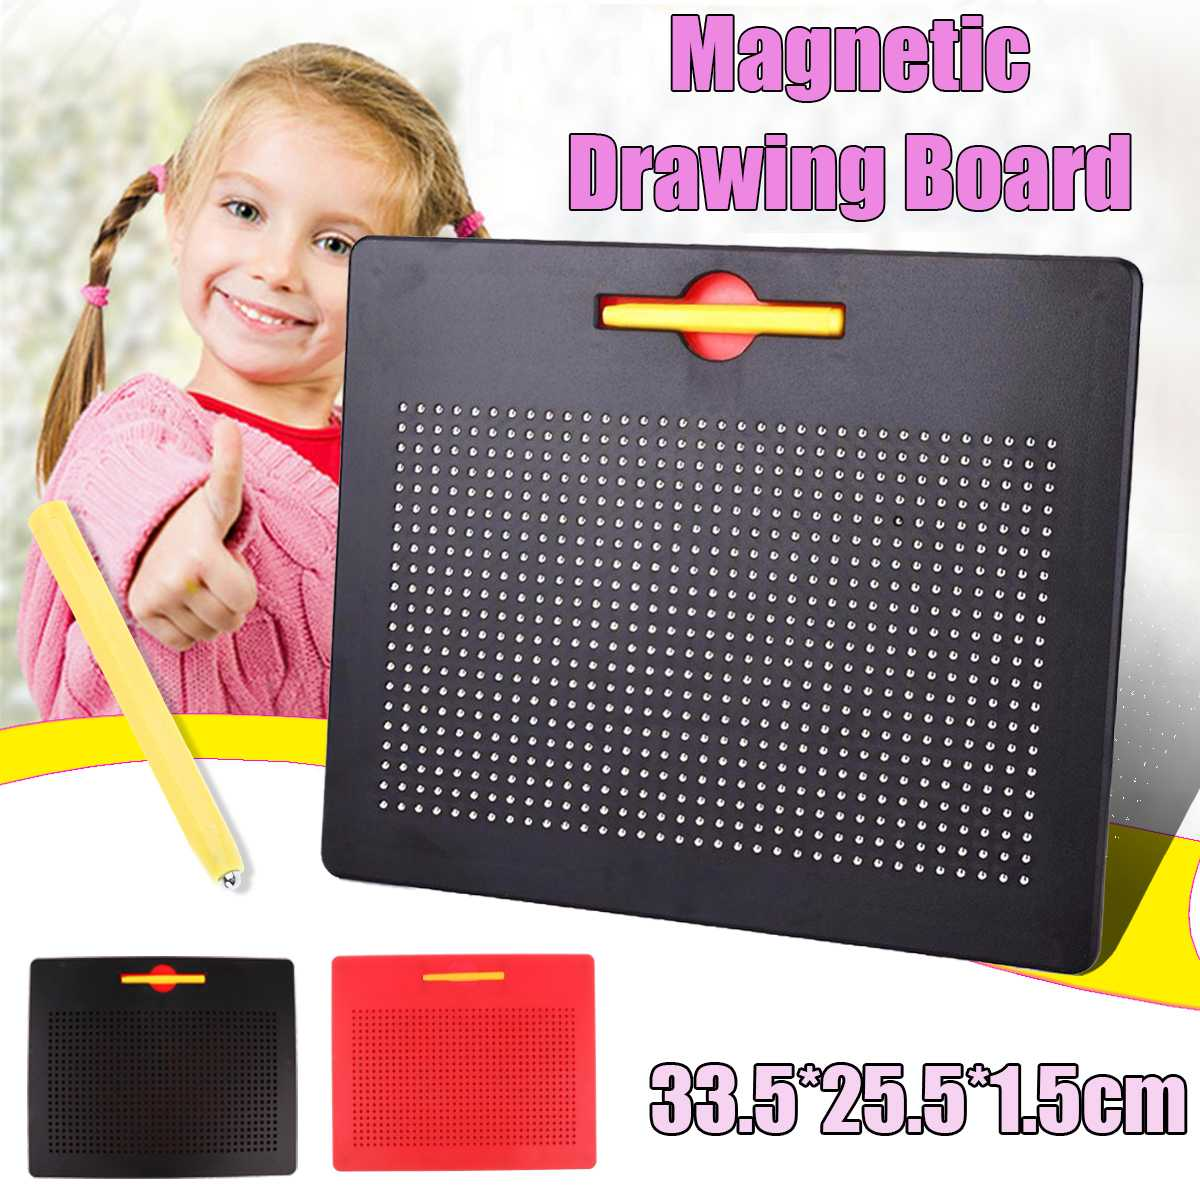 33.5x25.5cm Magnetic Tablet Magnet Pad Drawing Board Steel Bead Stylus Pen Learning Educational Writing Toys For Children Gift